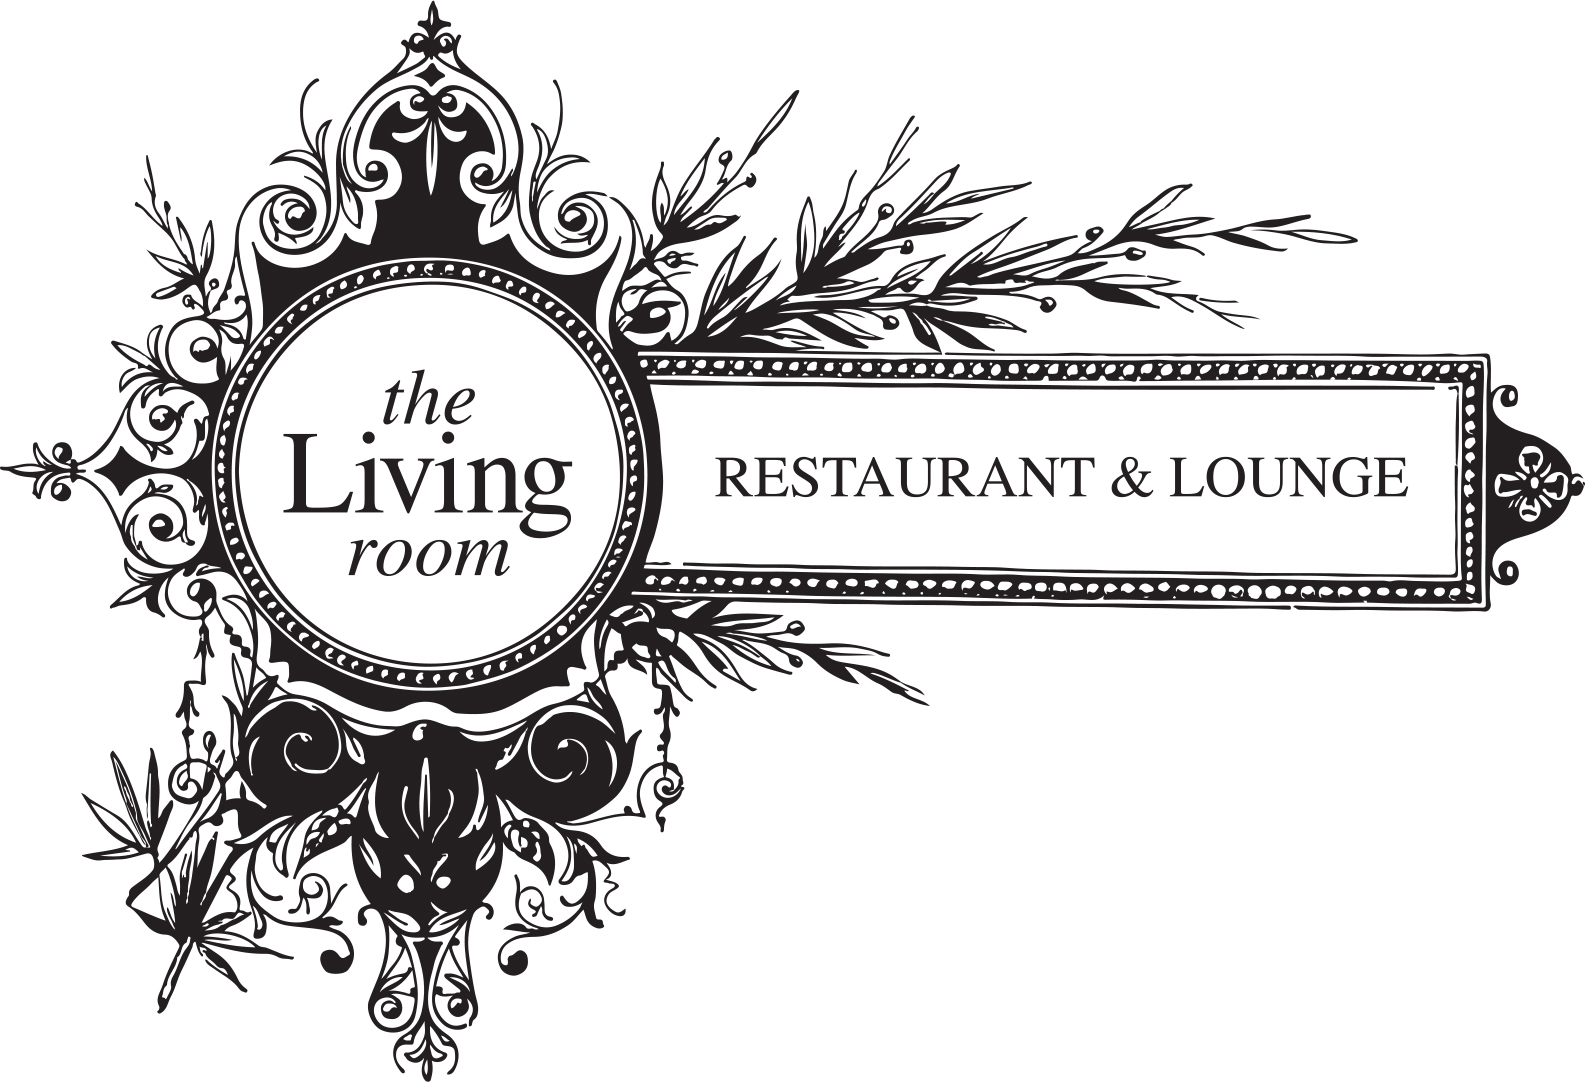 The living room_logo.jpg